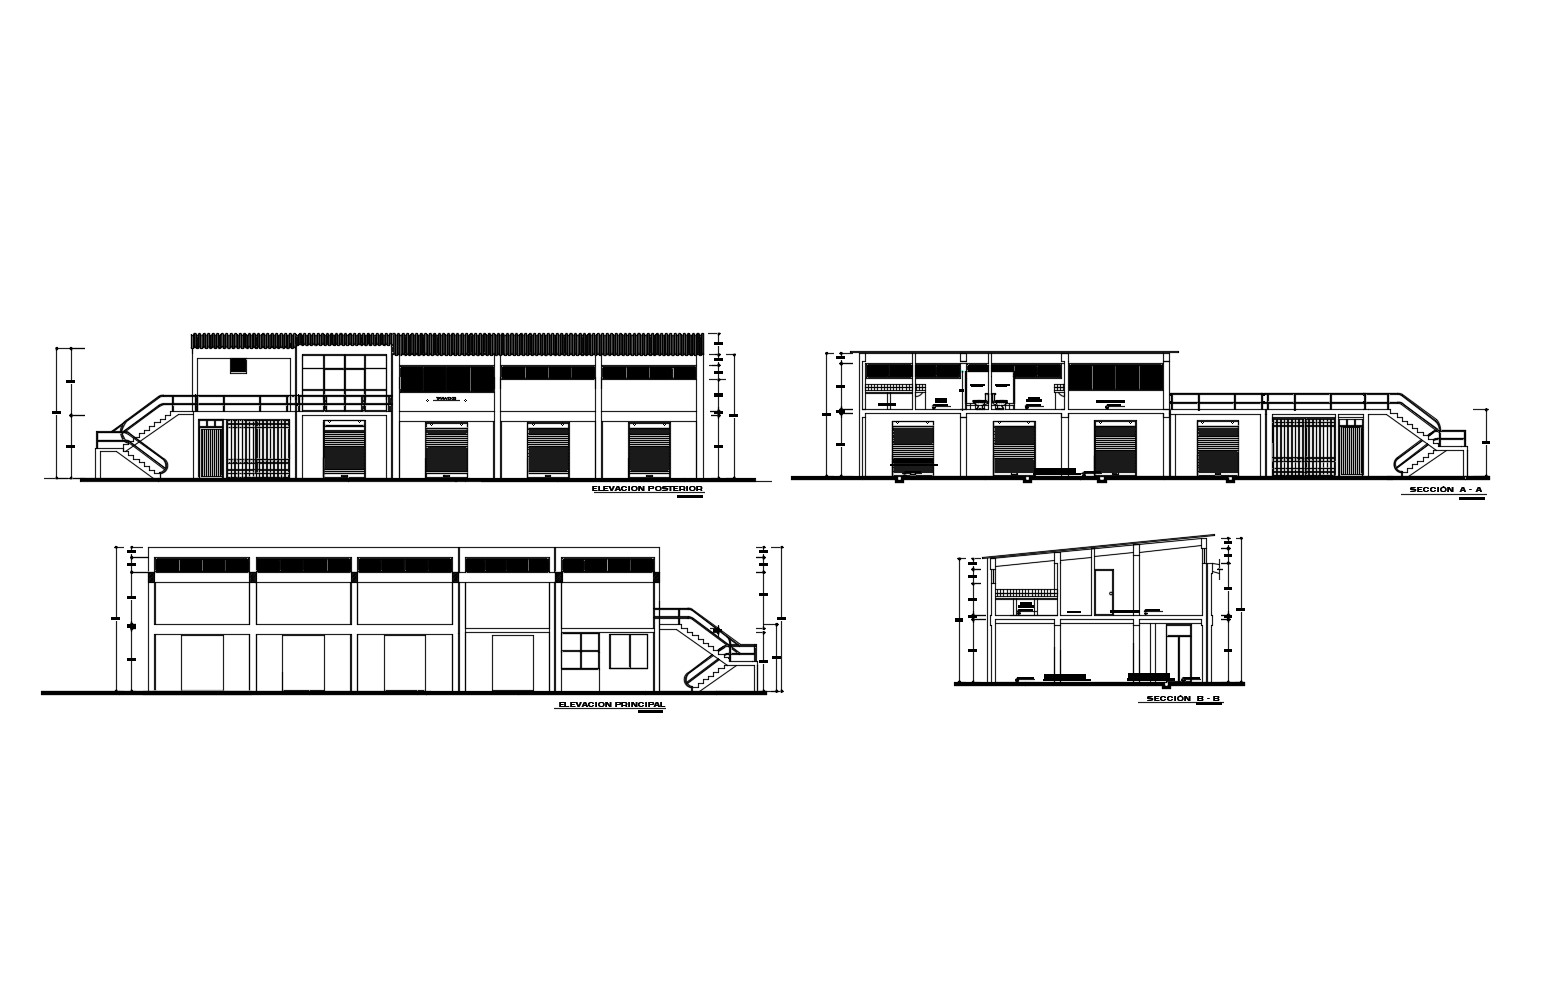 Drawing of office design with elevation and section in AutoCAD